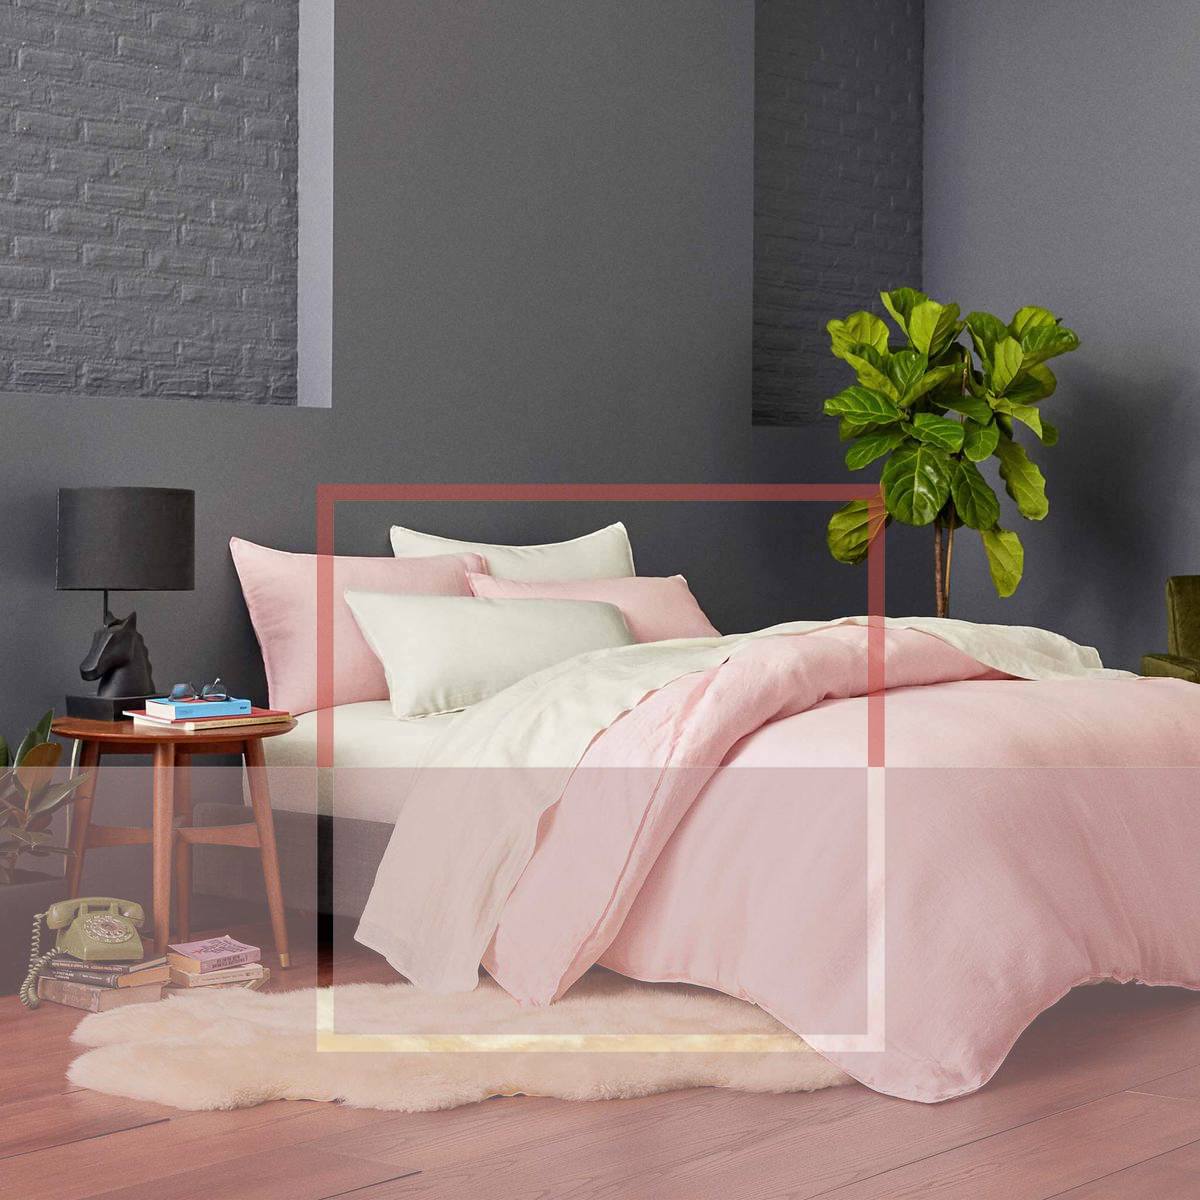 These Feng Shui Bedroom Tips Might Actually Help You Sleep Better